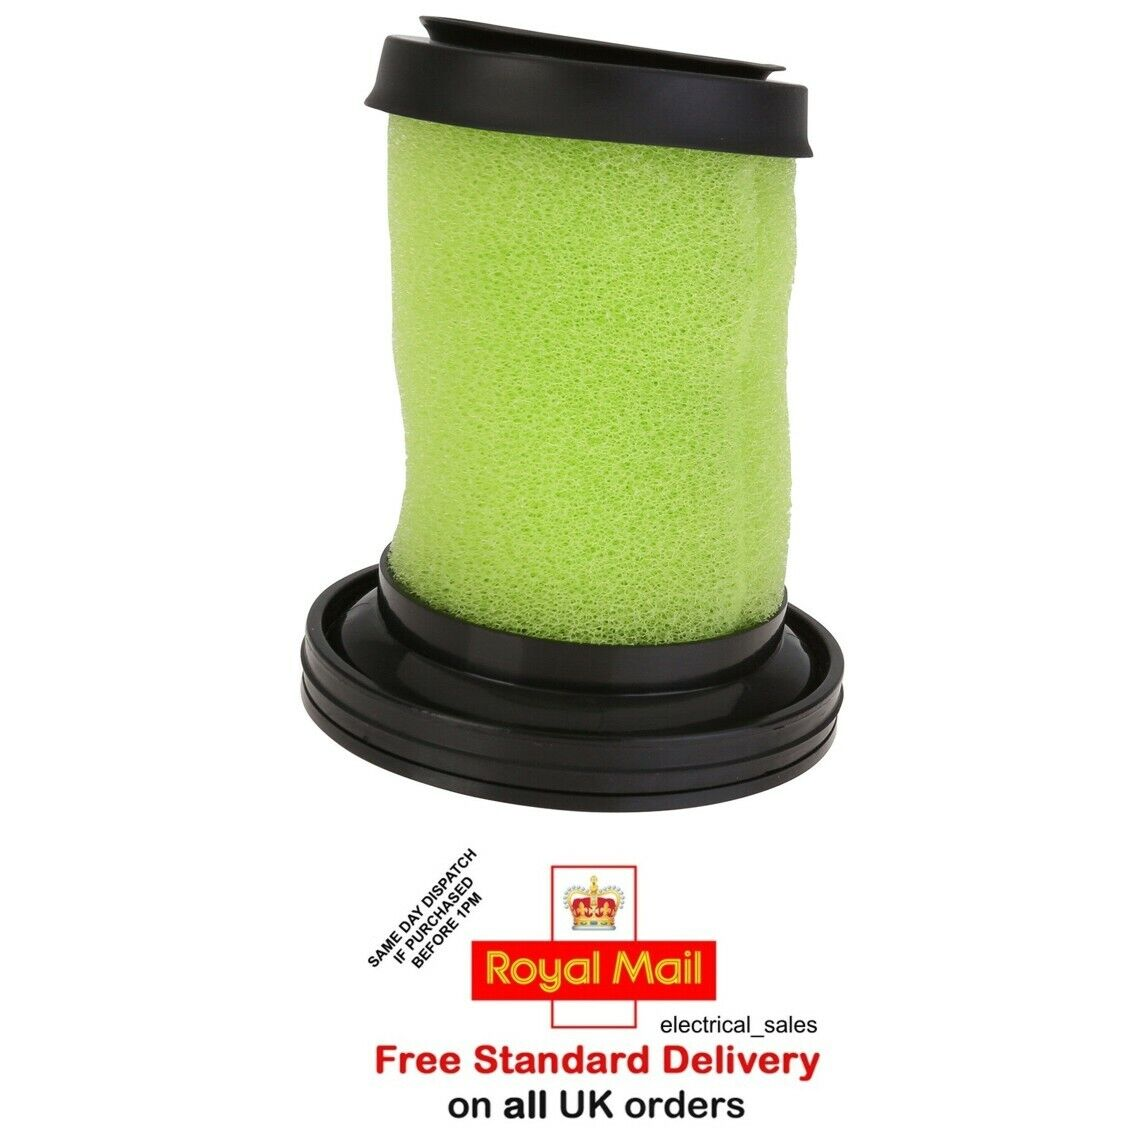 Lot of 145 Vacuum Washable Filter for GTECH Multi MK2 K9 ATF036 Cordless Hoover